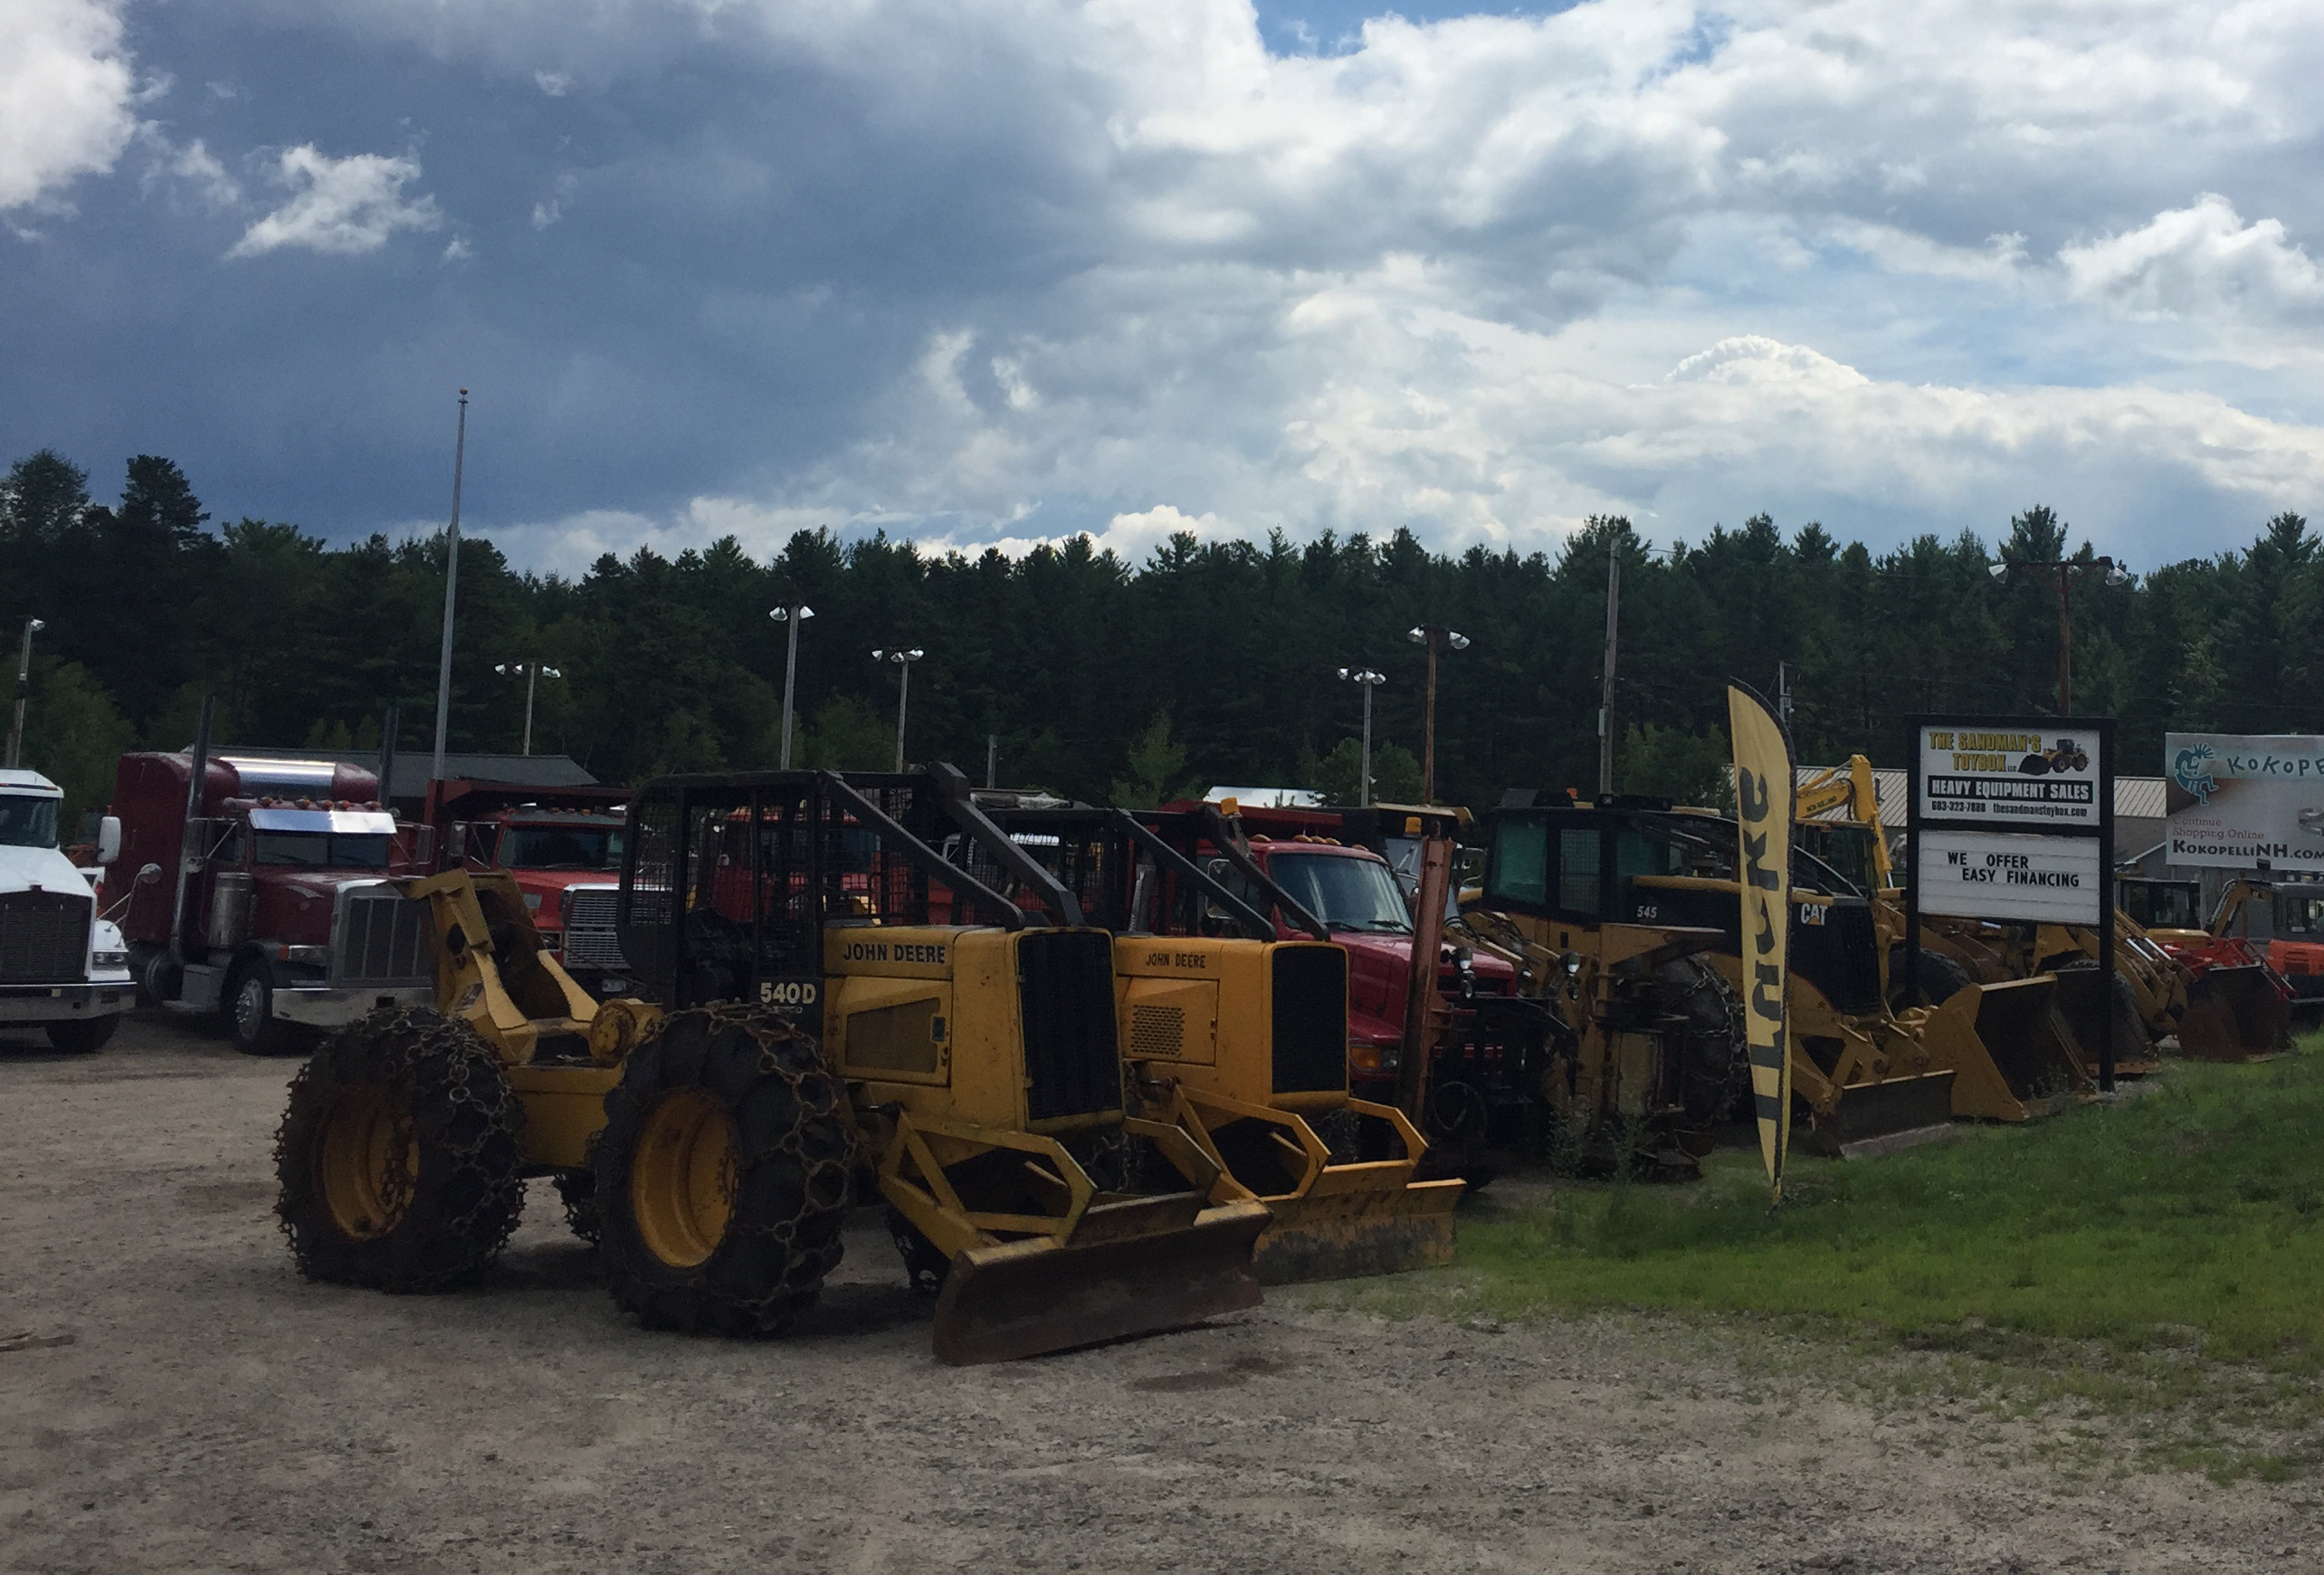 used forestry equipment for sale in new hampshire used forestry equipment for sale in nh local. Black Bedroom Furniture Sets. Home Design Ideas